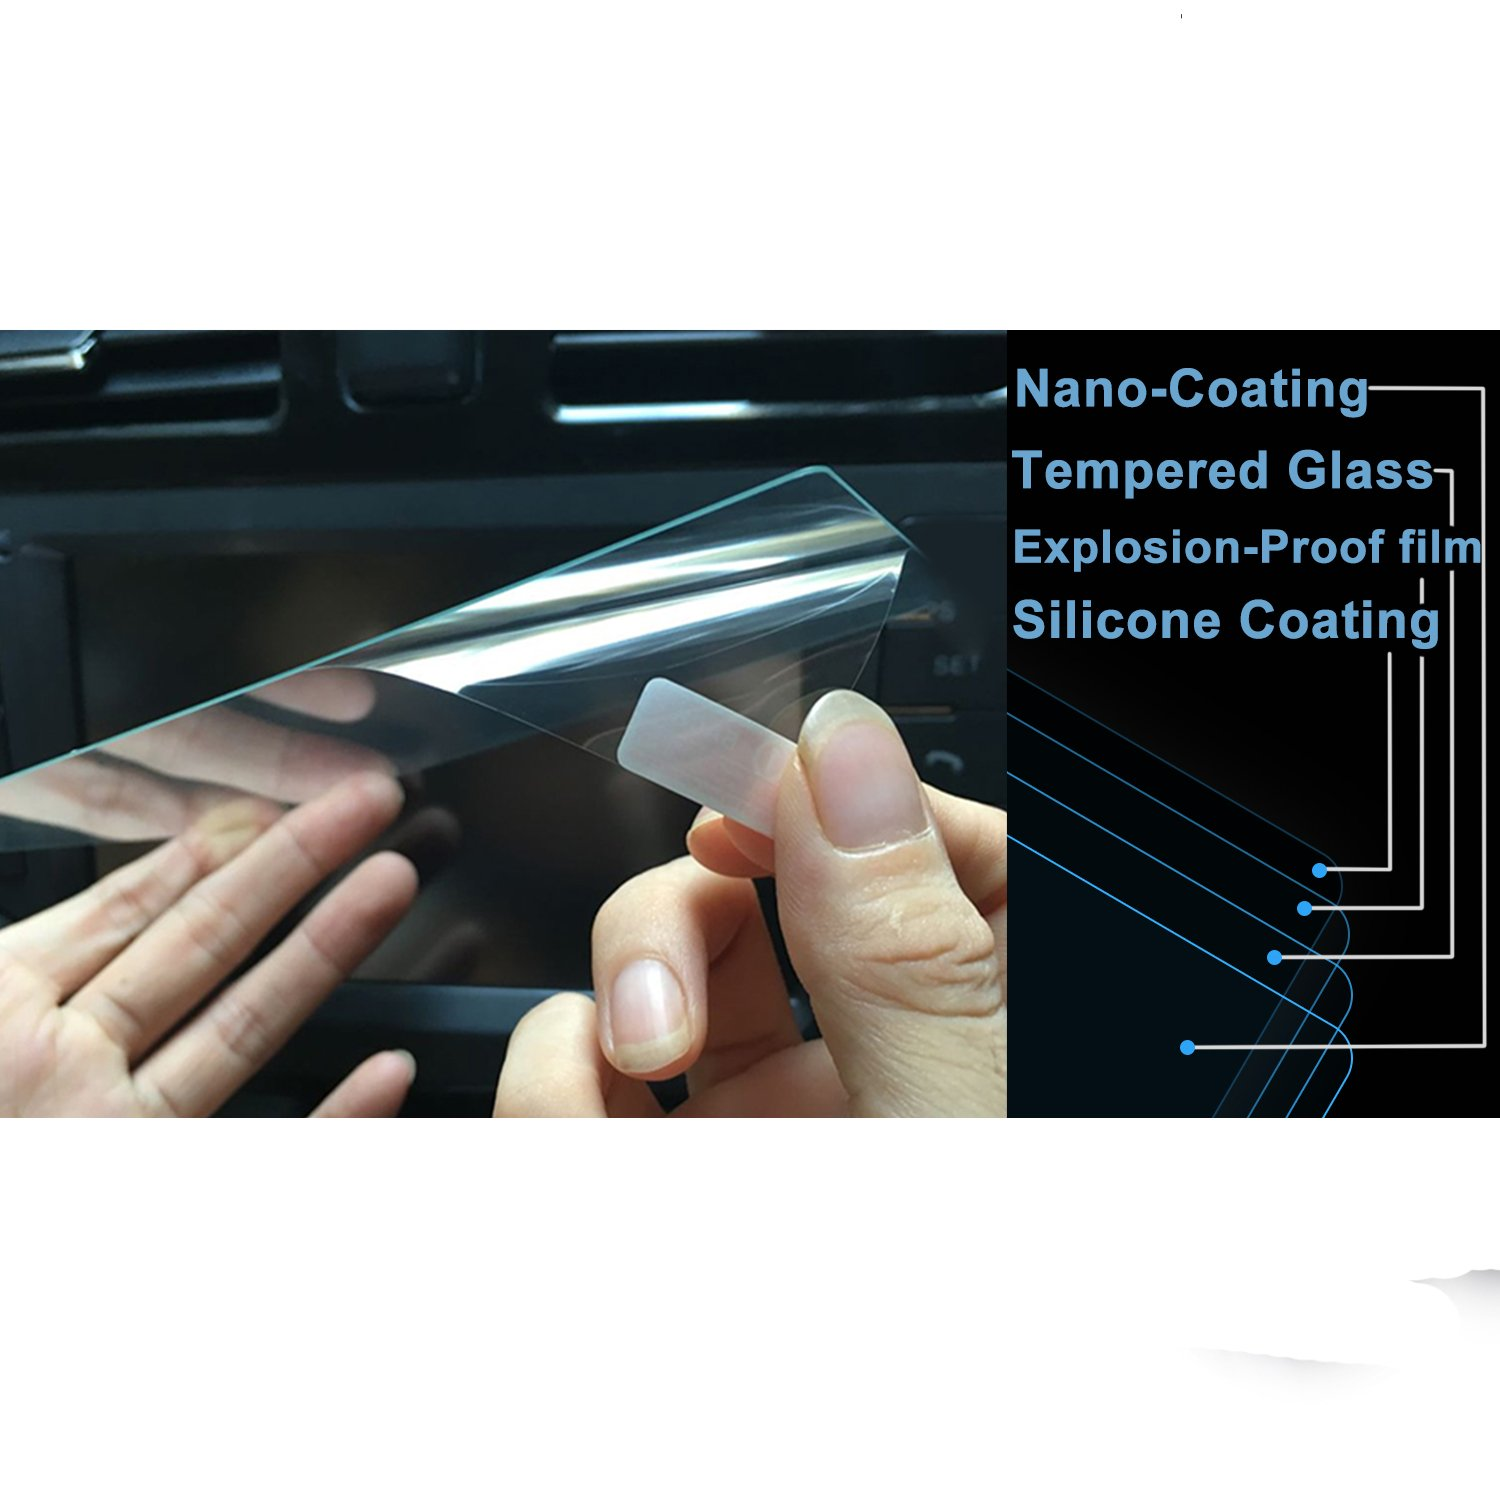 Clear Tempered Glass Infotainment Display in-Dash Center Touch Screen Protector LiFan 2016-2017 Mazda CX-3//MX-5 7-Inch LFOTPP 2016-2017 Mazda CX-3 MX-5 7-Inch MZD Connect Car Navigation Screen Protector